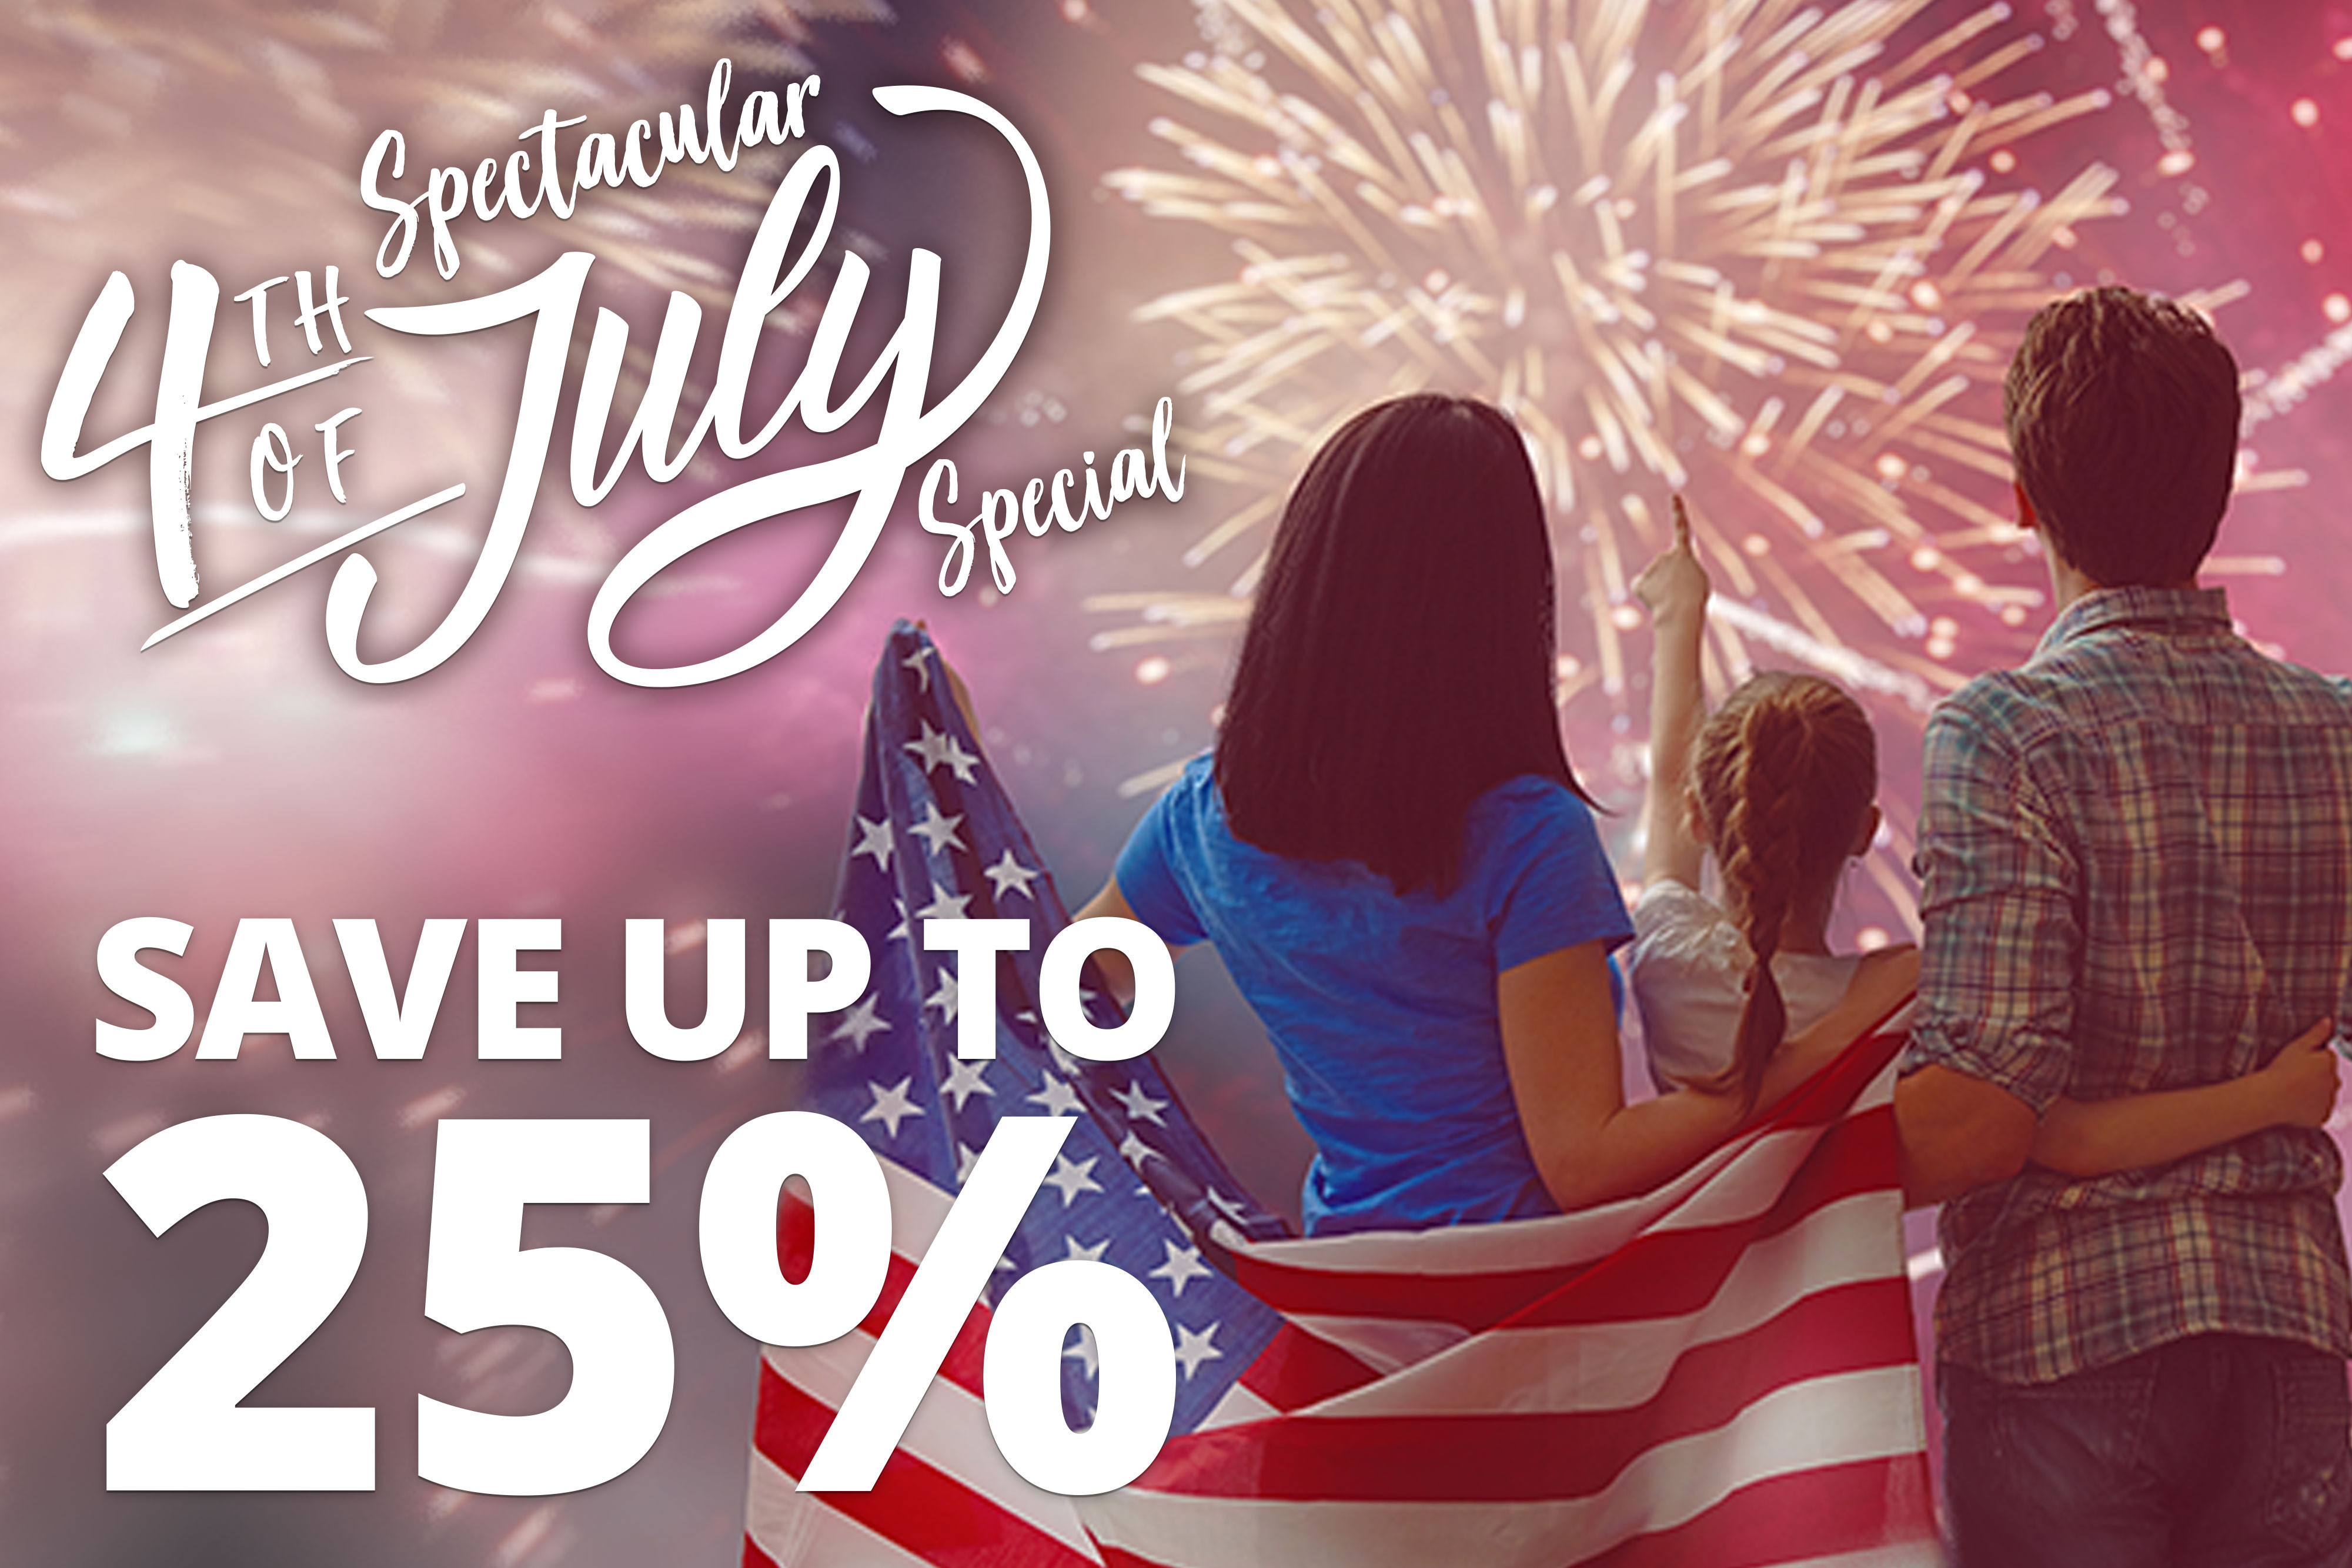 Spectacular Fourth of July Special – Save up to 25% when you stay at Westgate Resorts!